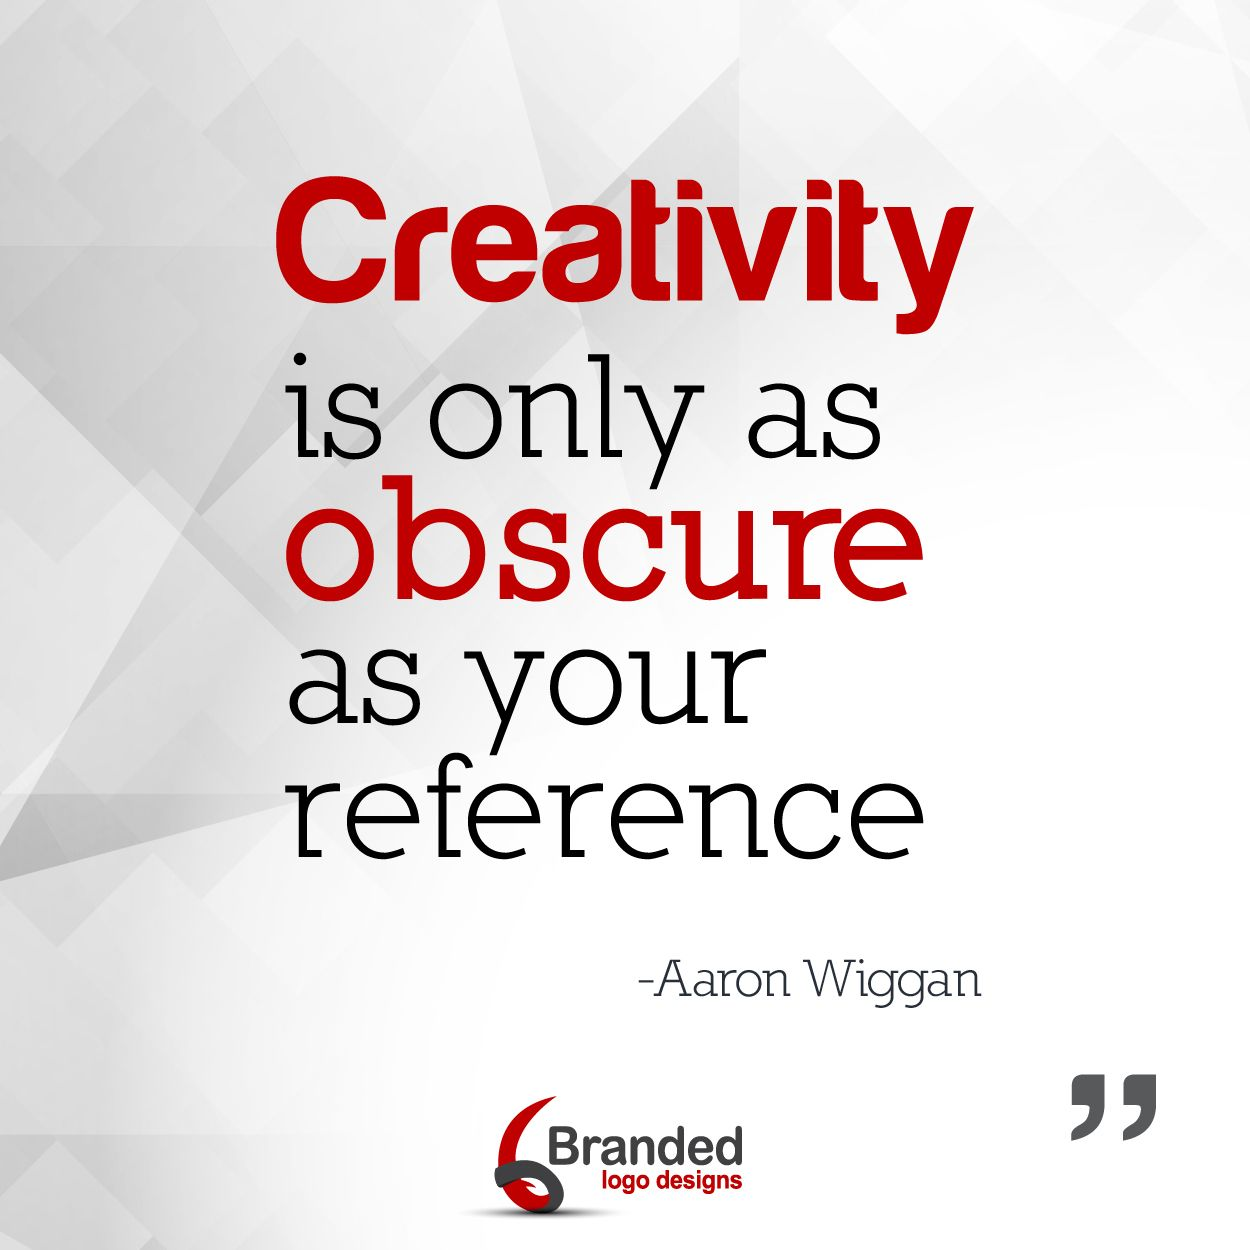 Creativity is all in you it's not created..  #Creativity  #Brandedlogodesign